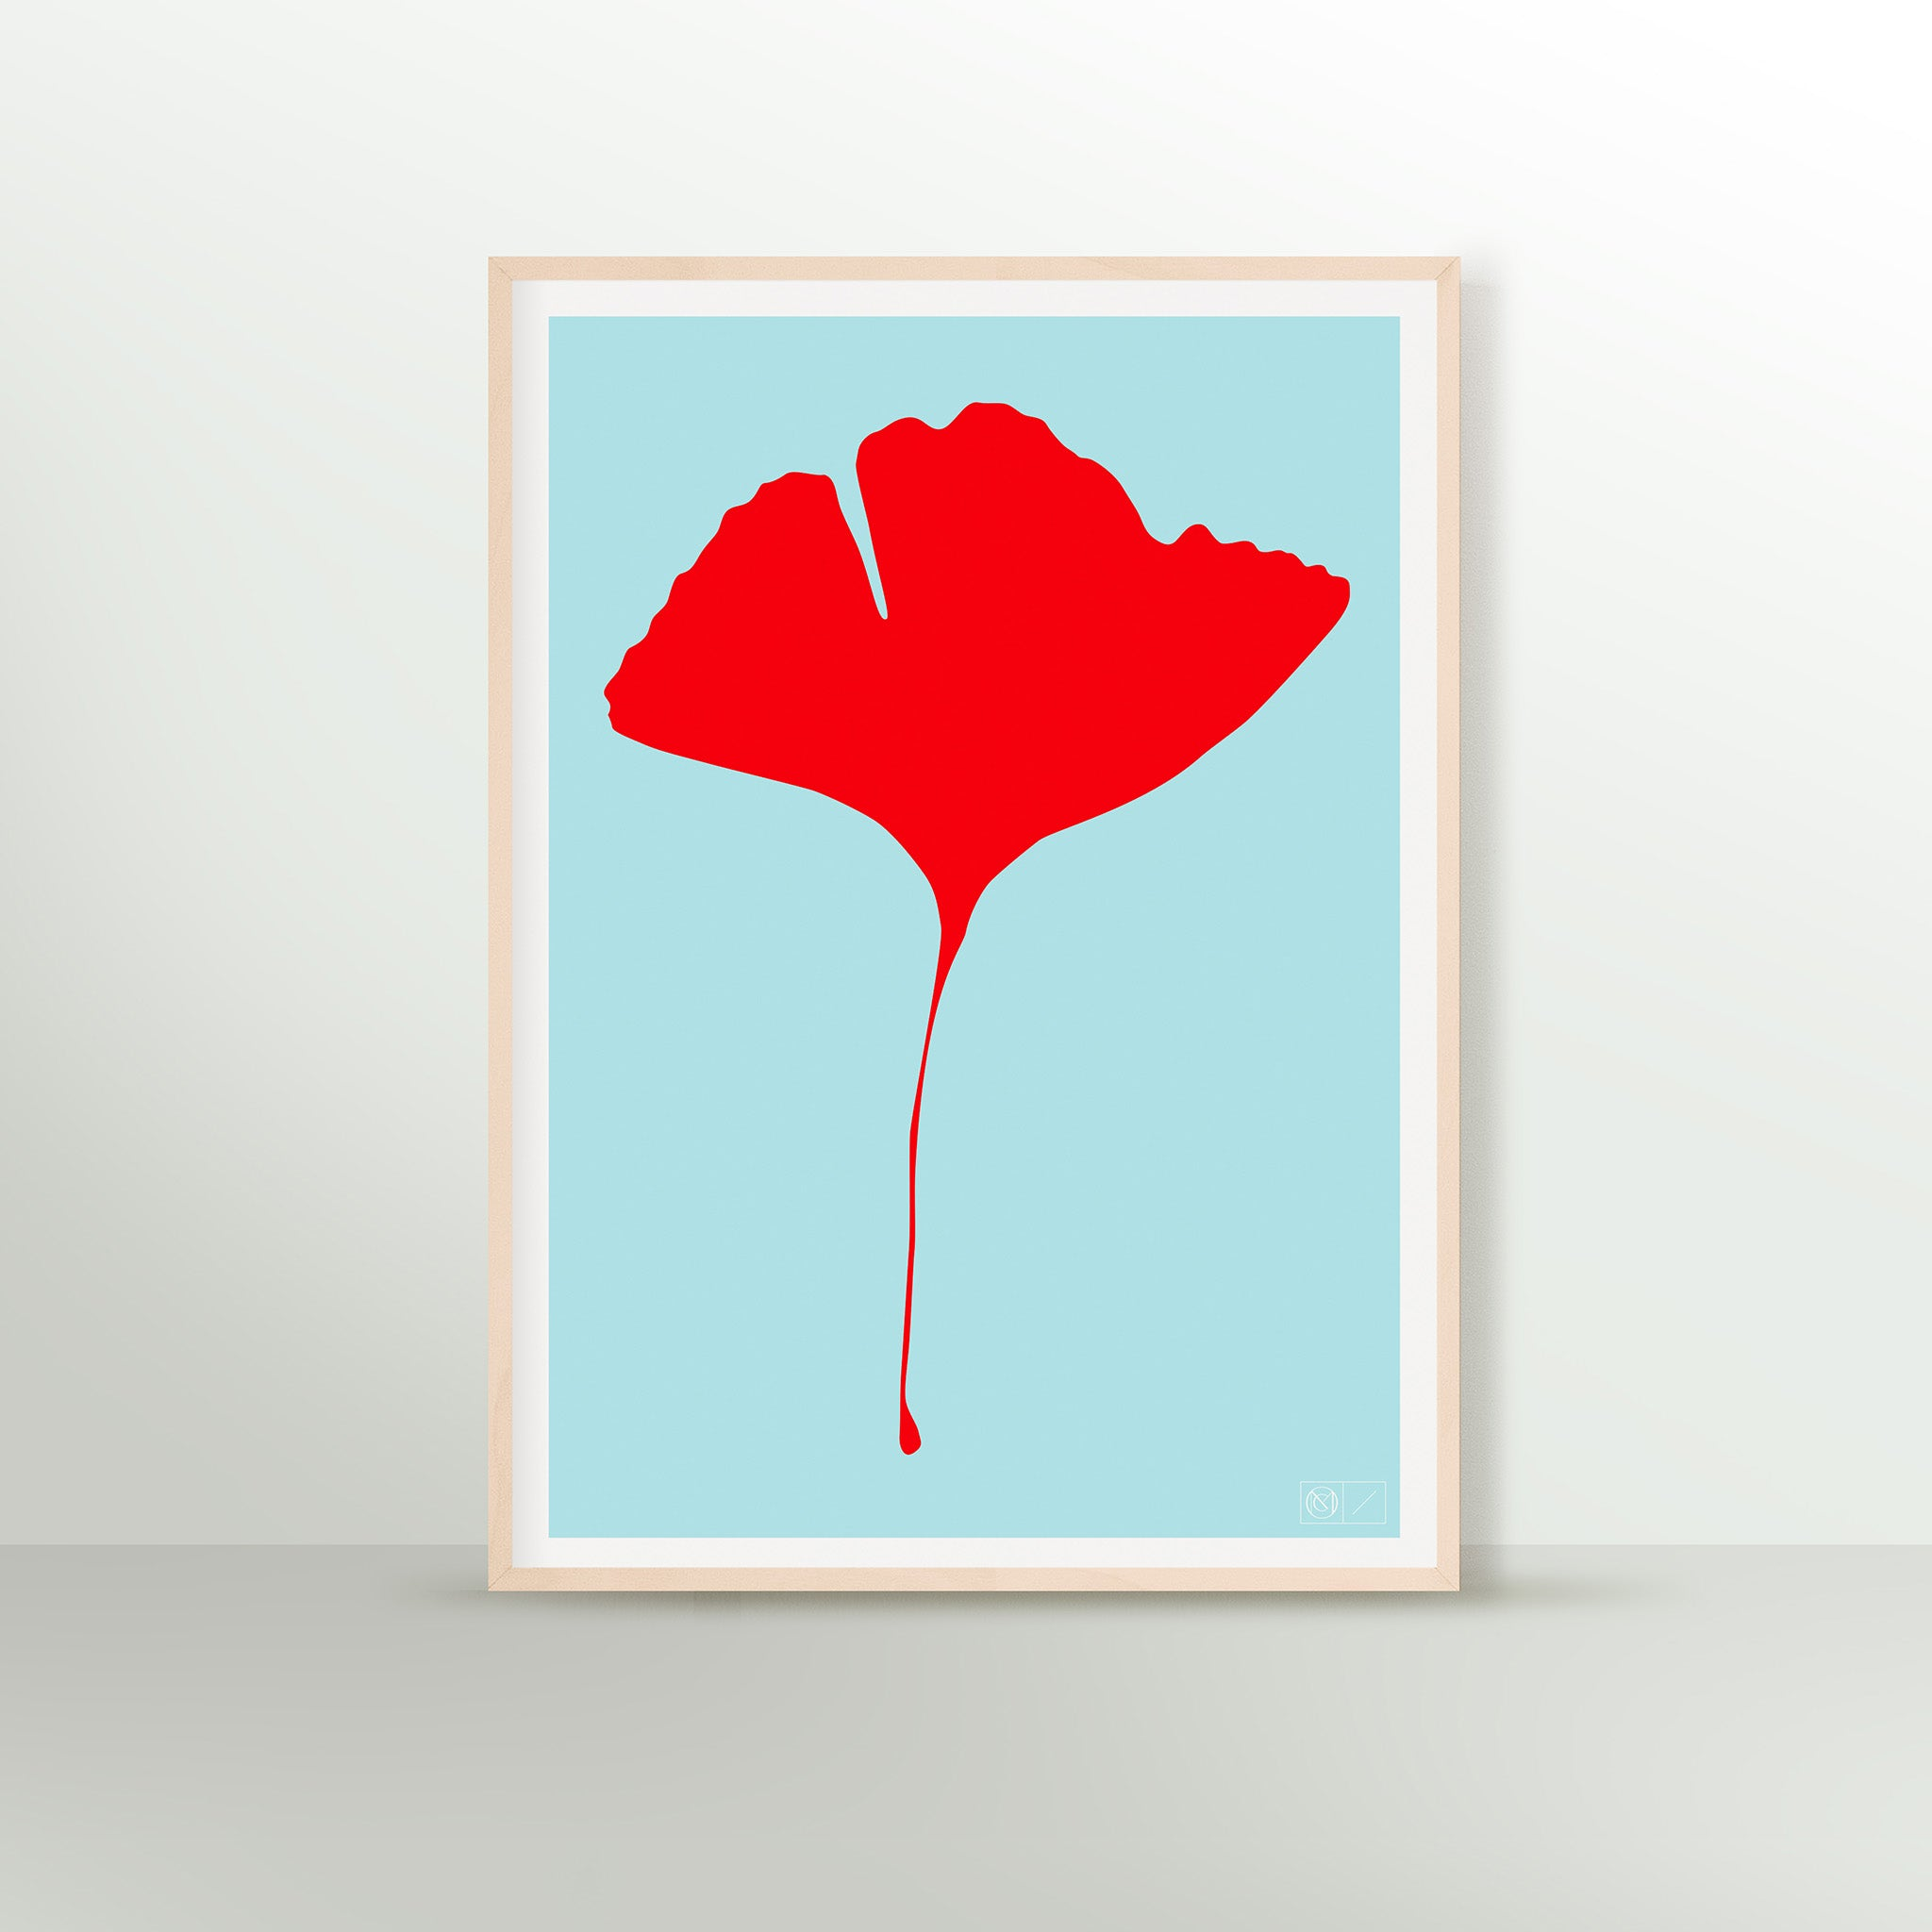 GINKGO POP Poster - No.2 - Screen Print - 50 x 70cm